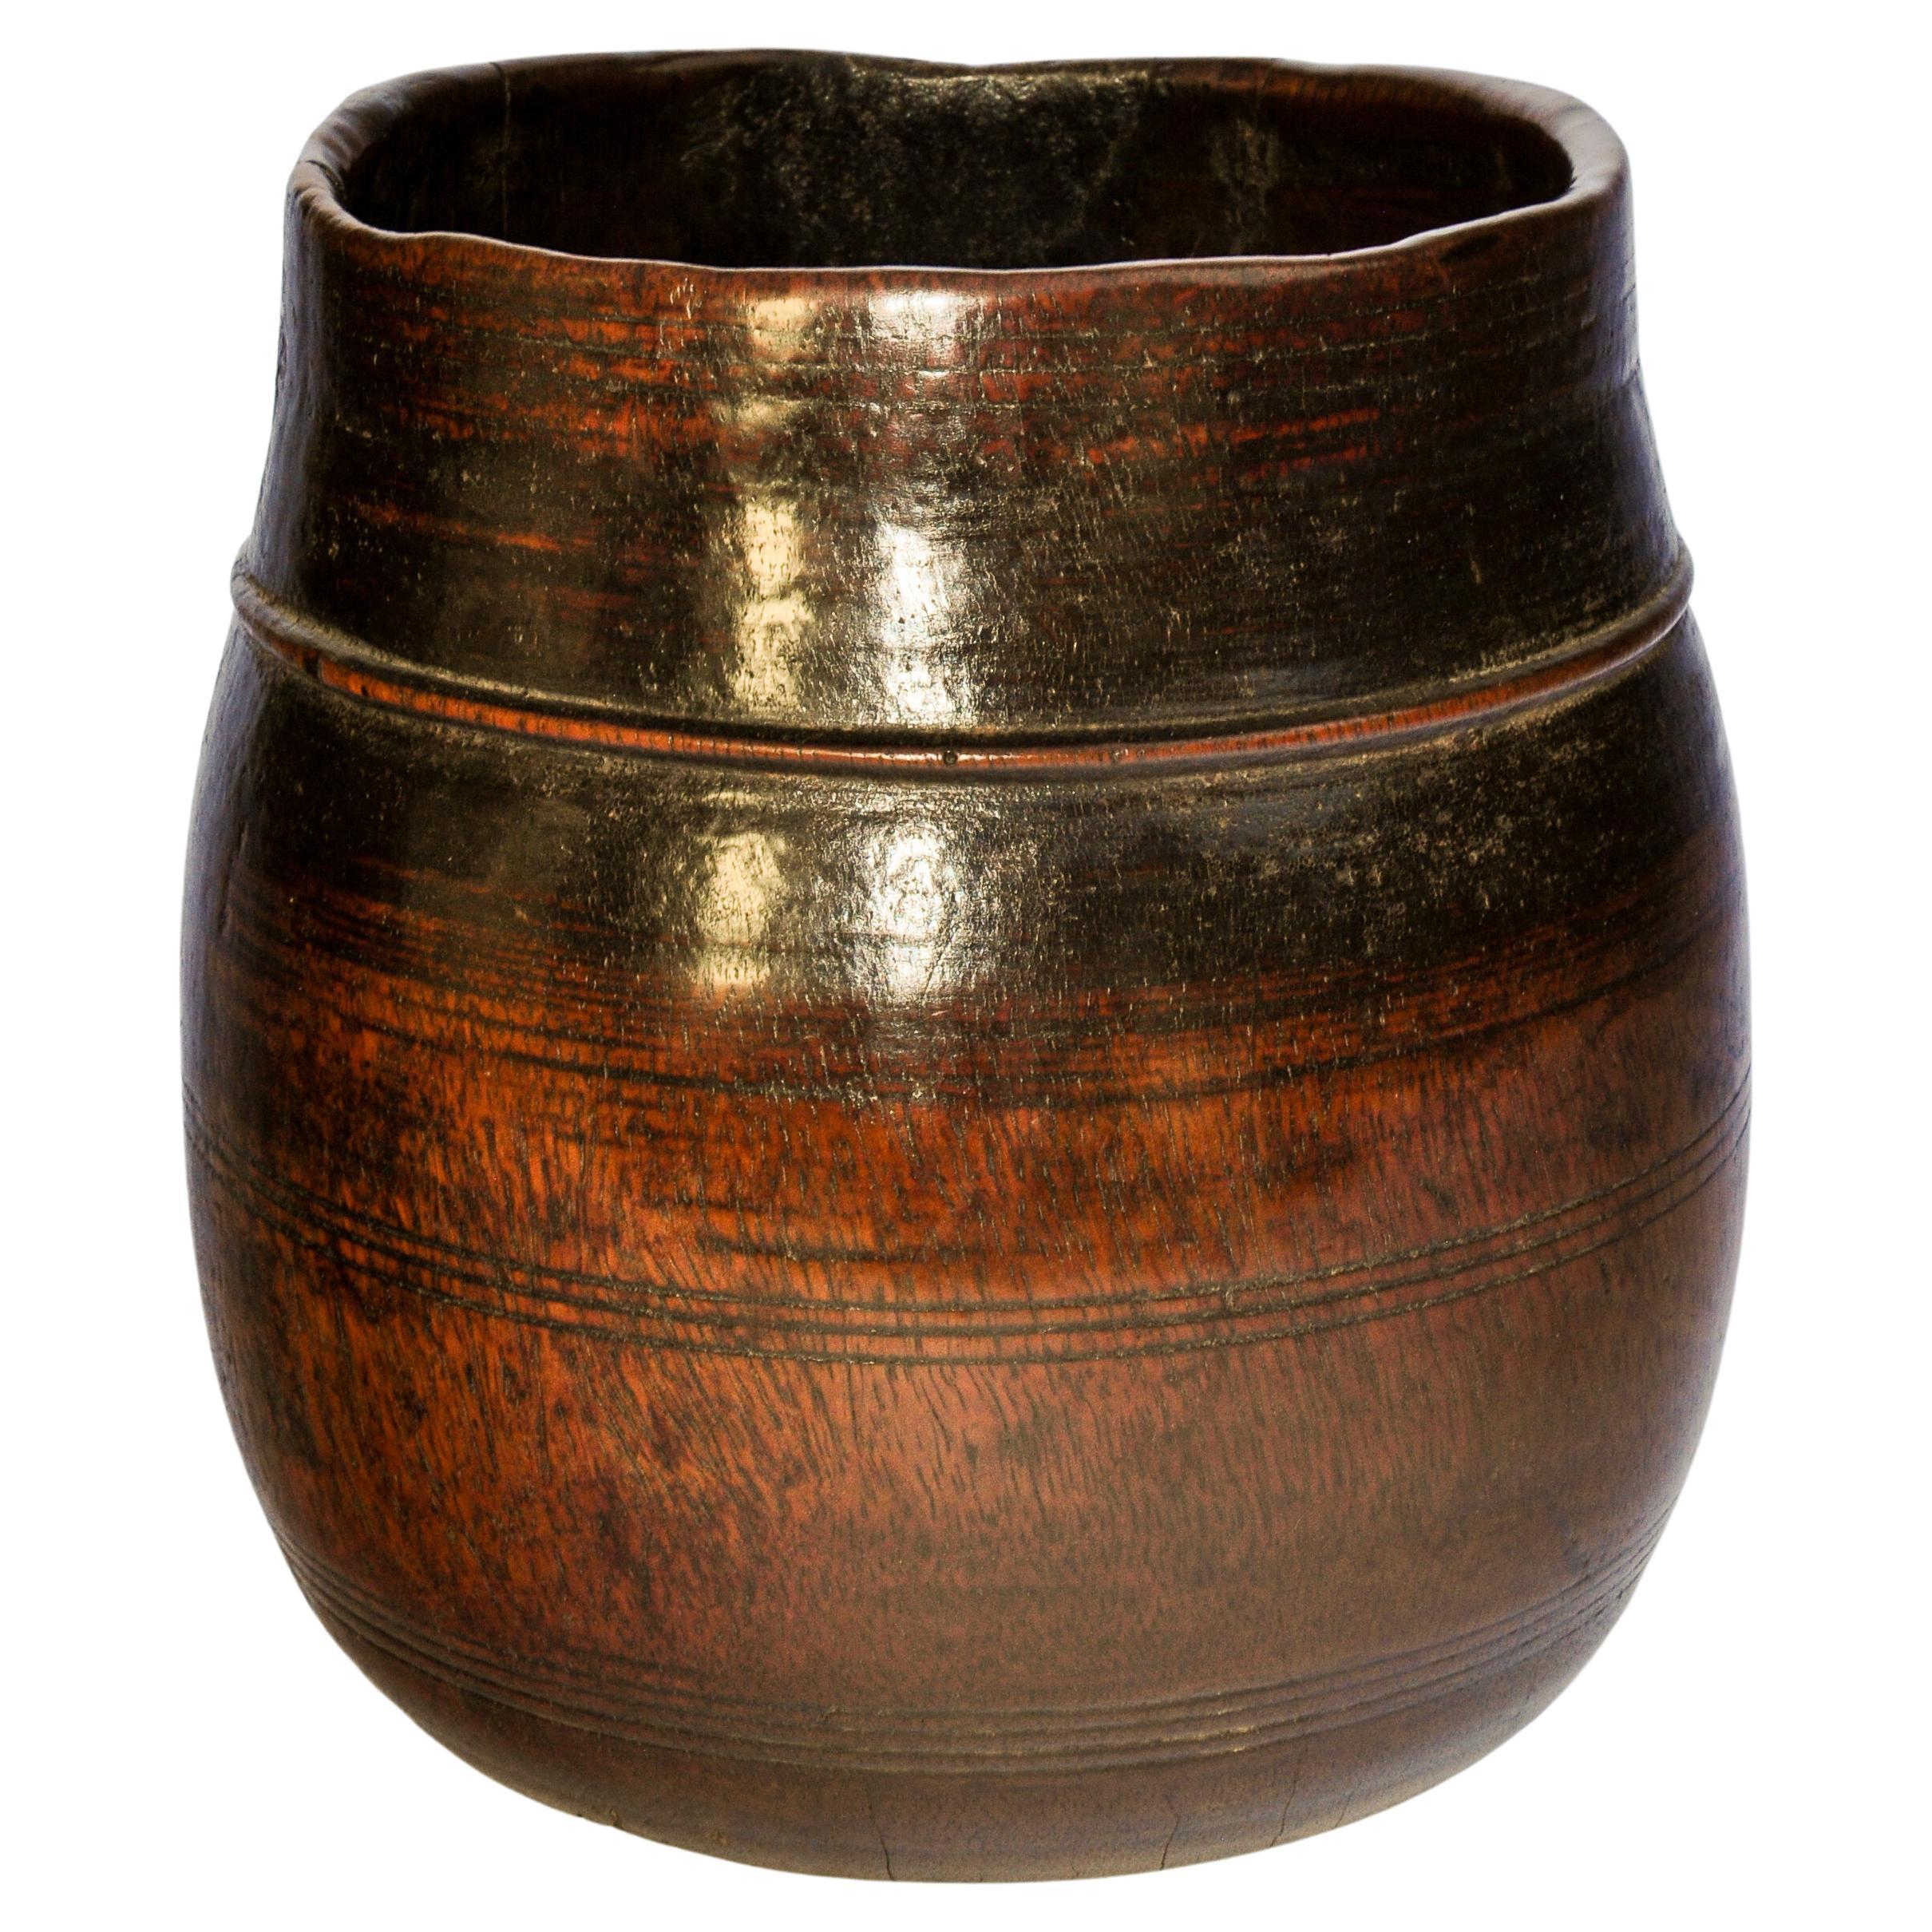 Vintage Wooden Grain Measure Pot from the Mountains of Nepal, Mid-20th Century